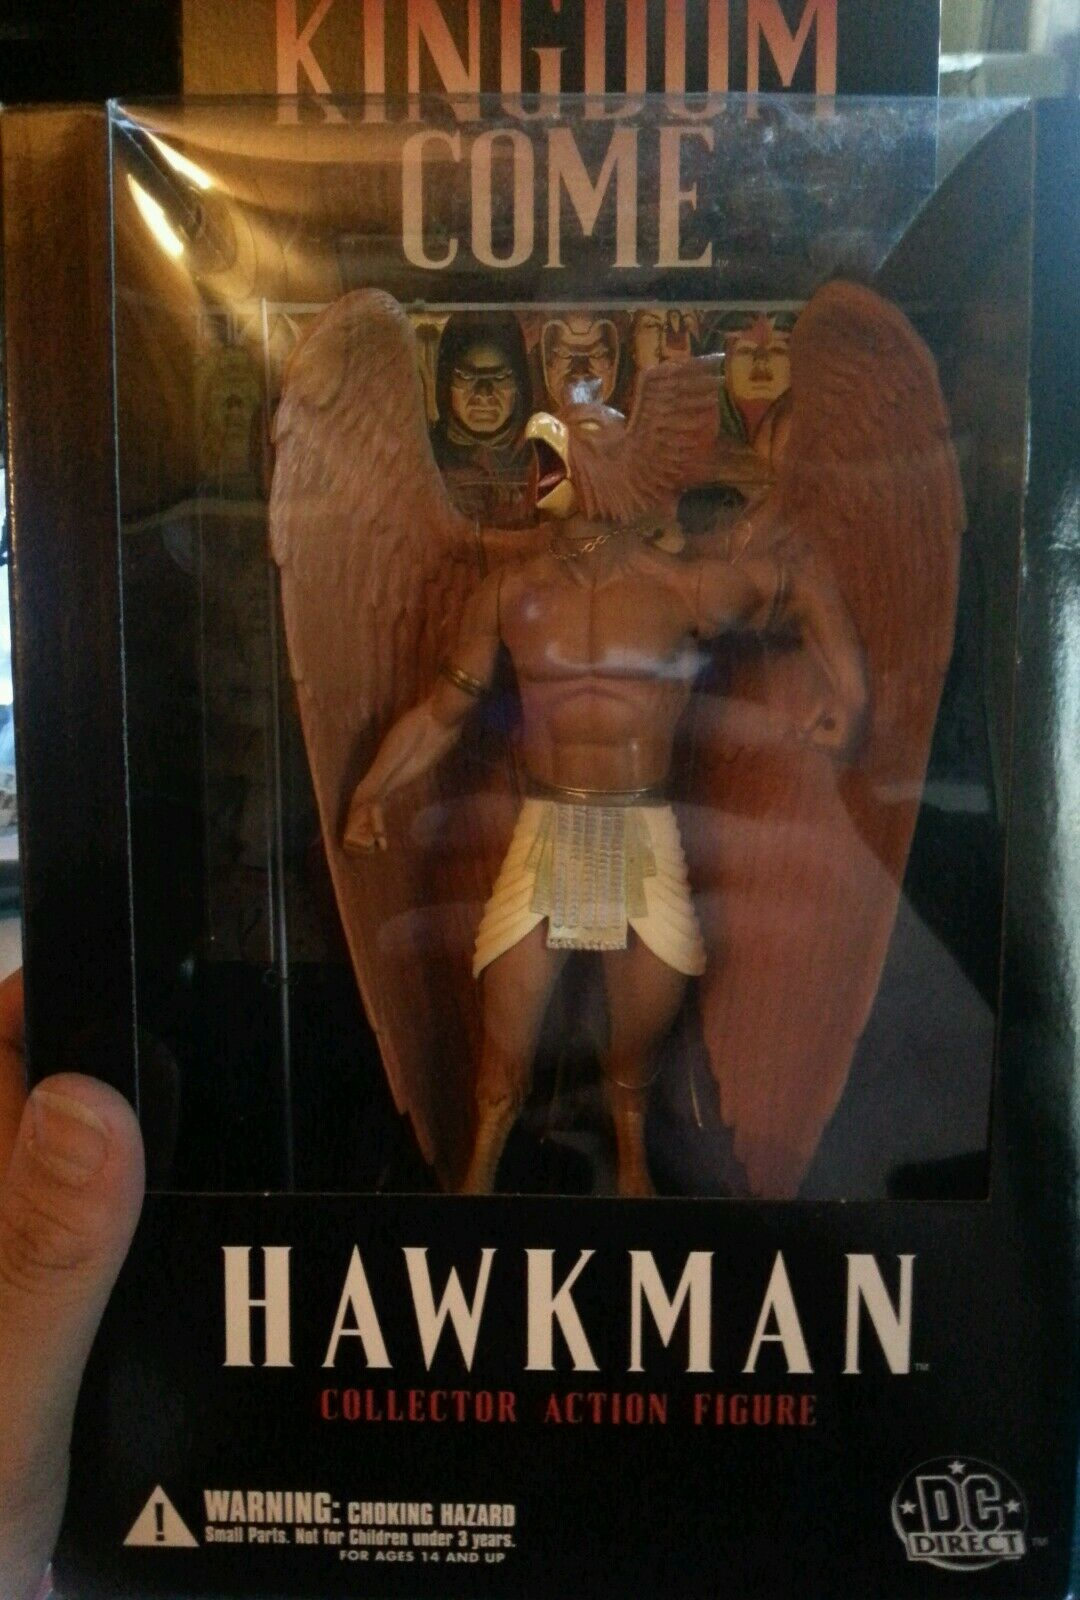 KINGDOM COME HAWKMAN DC DIRECT collector action figure